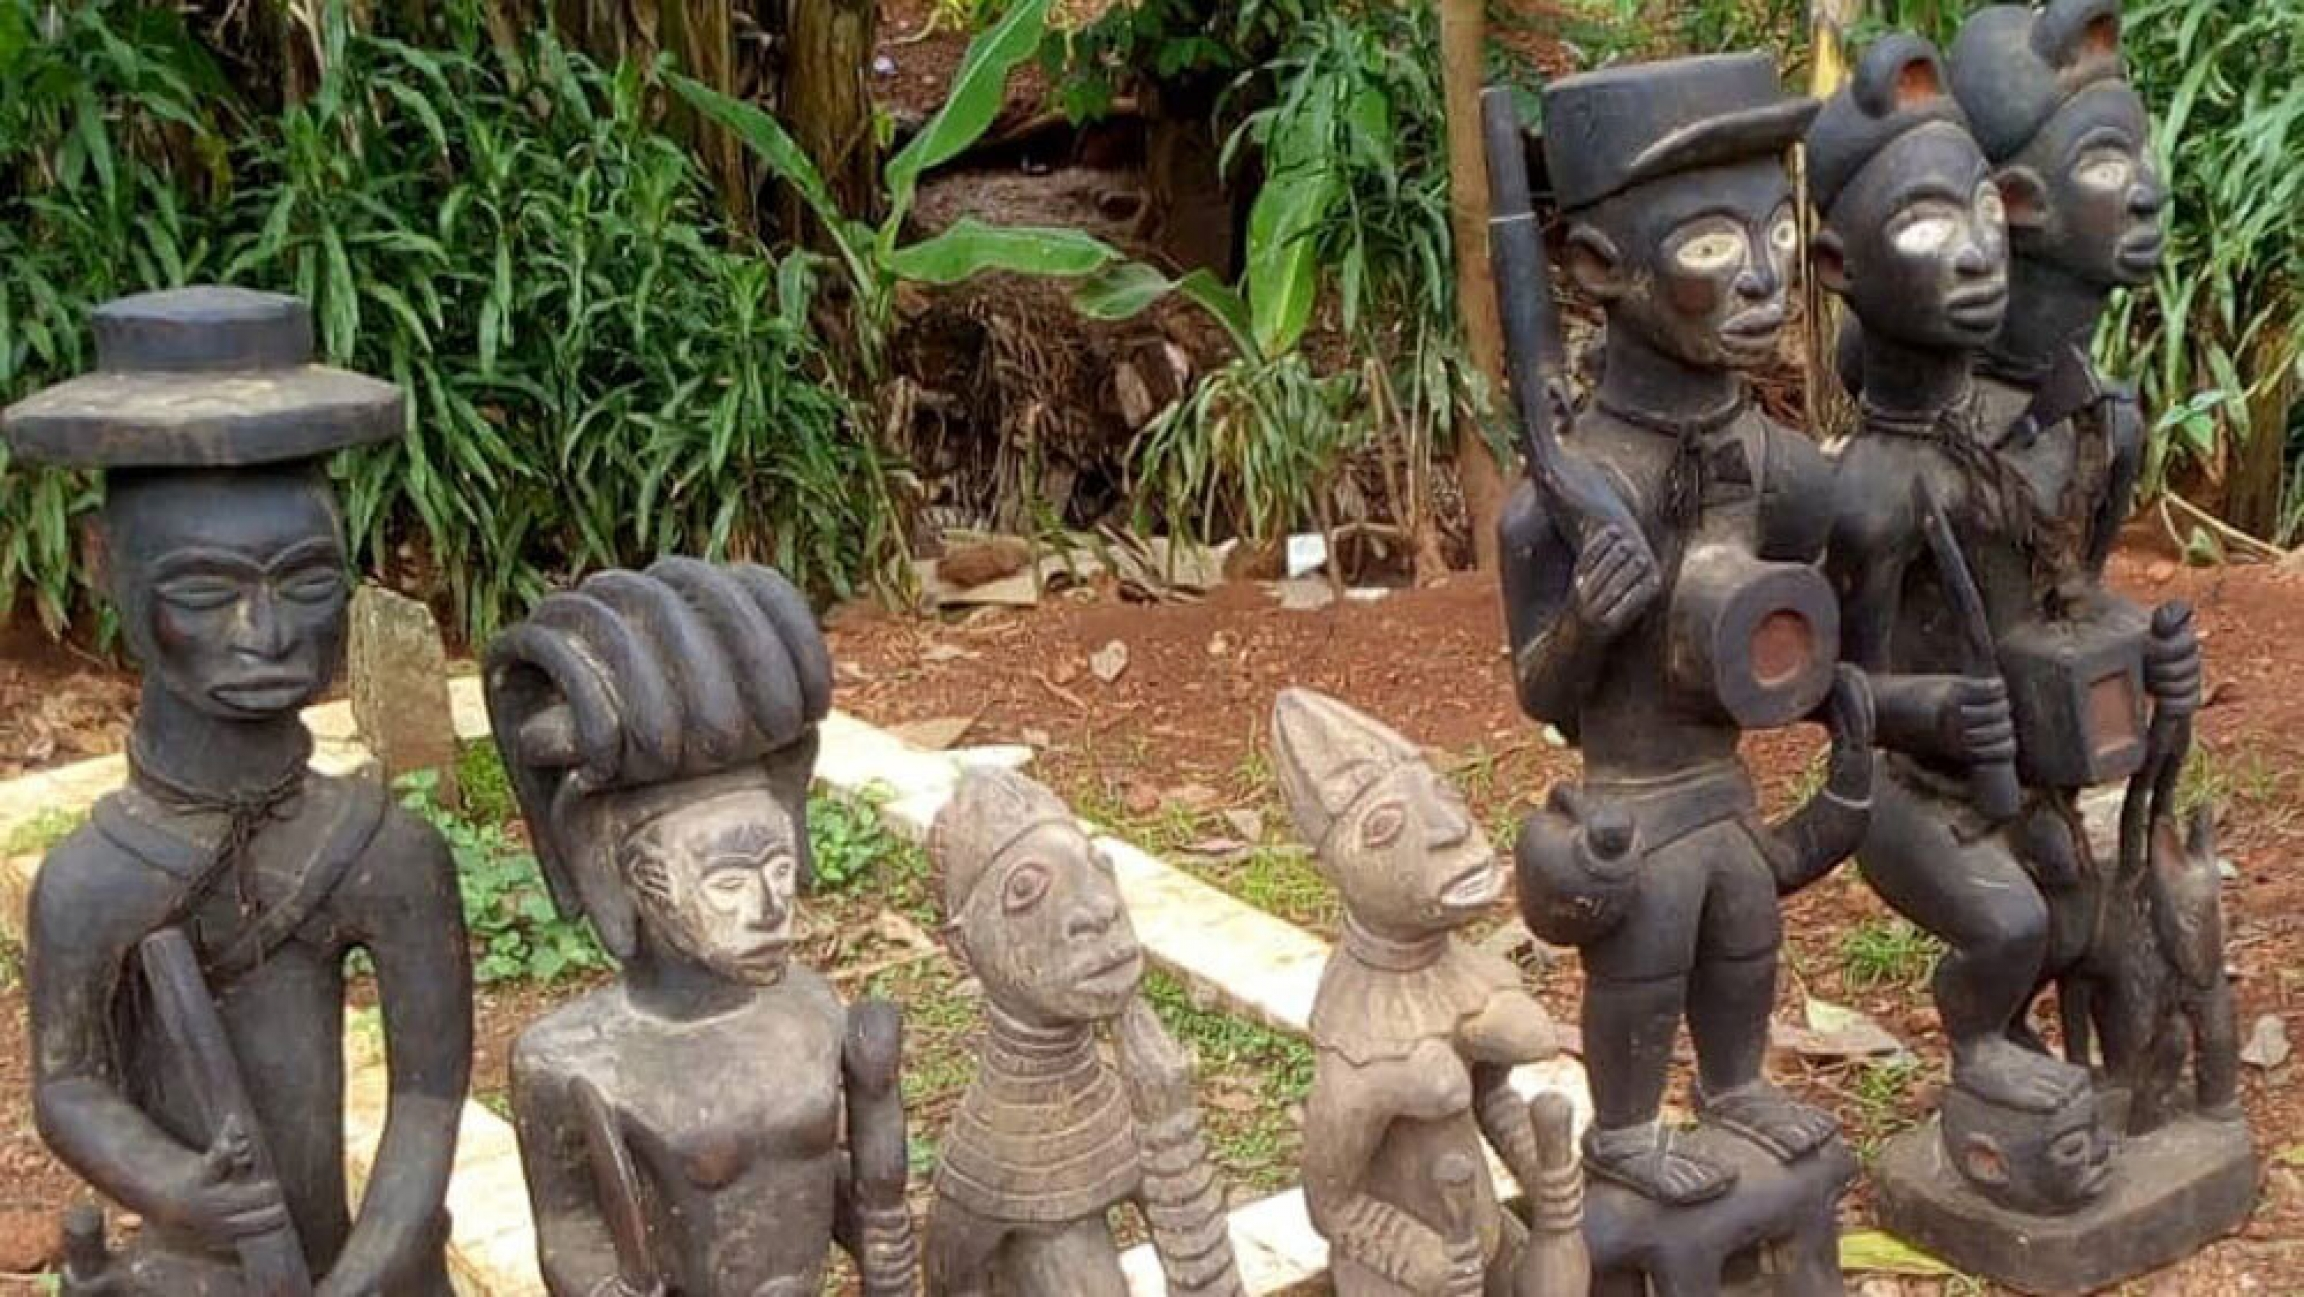 Art pieces a scammer claimed were photographed in Cameroon and authorized by UNESCO for sale and export. The art collector paid 6,000 euros before calling UNESCO and realizing the fraud.